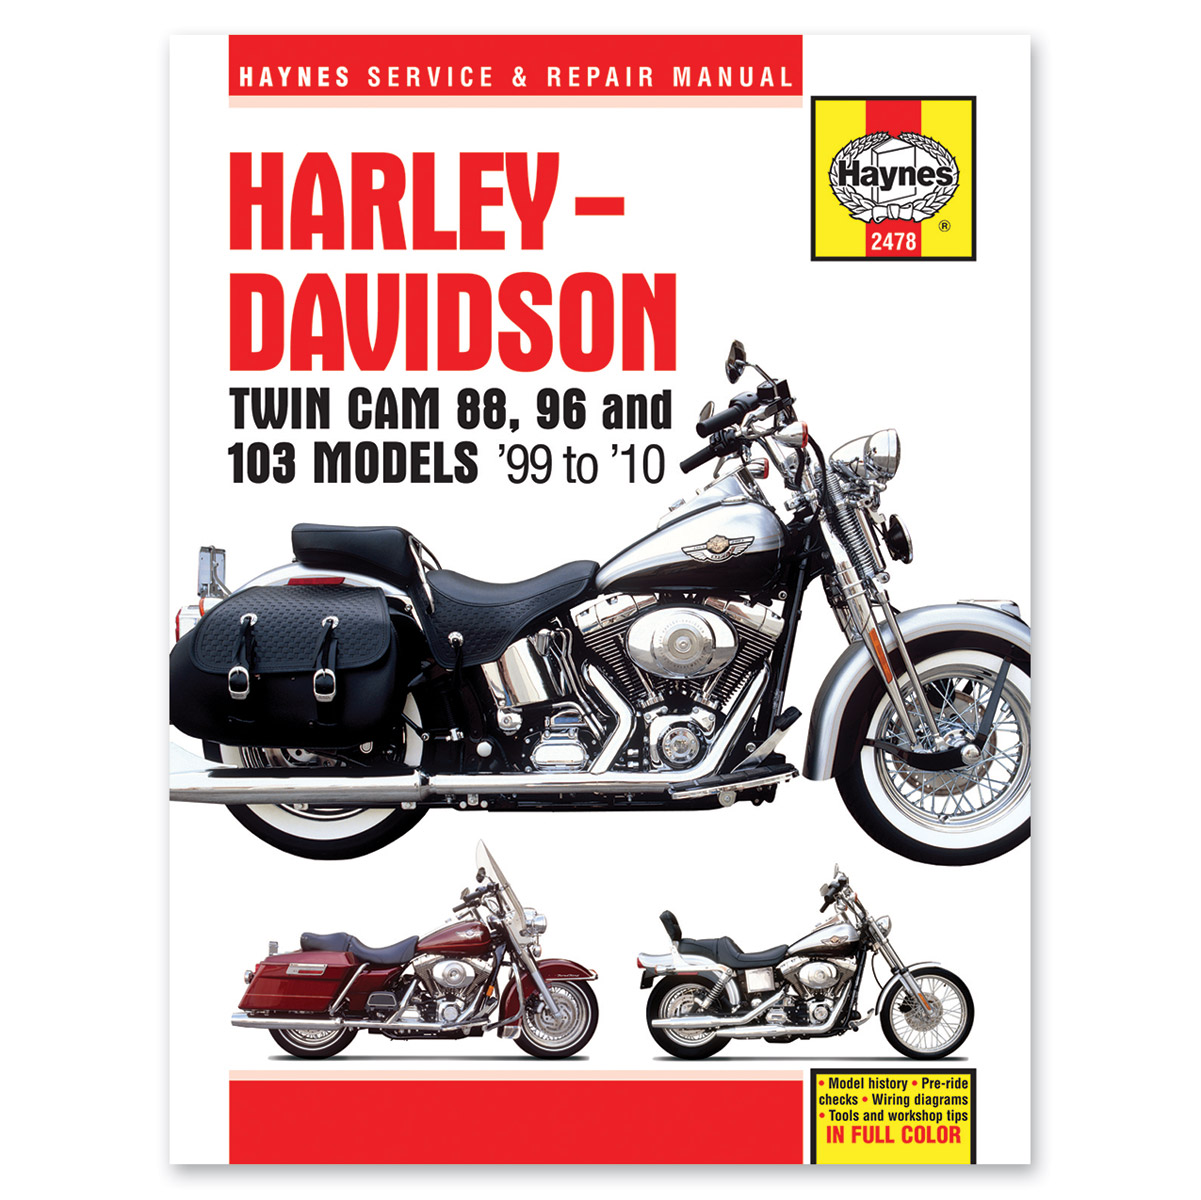 Haynes Twin Cam Manual 160 019 Jp Cycles 103 Harley Wiring Diagram 2014